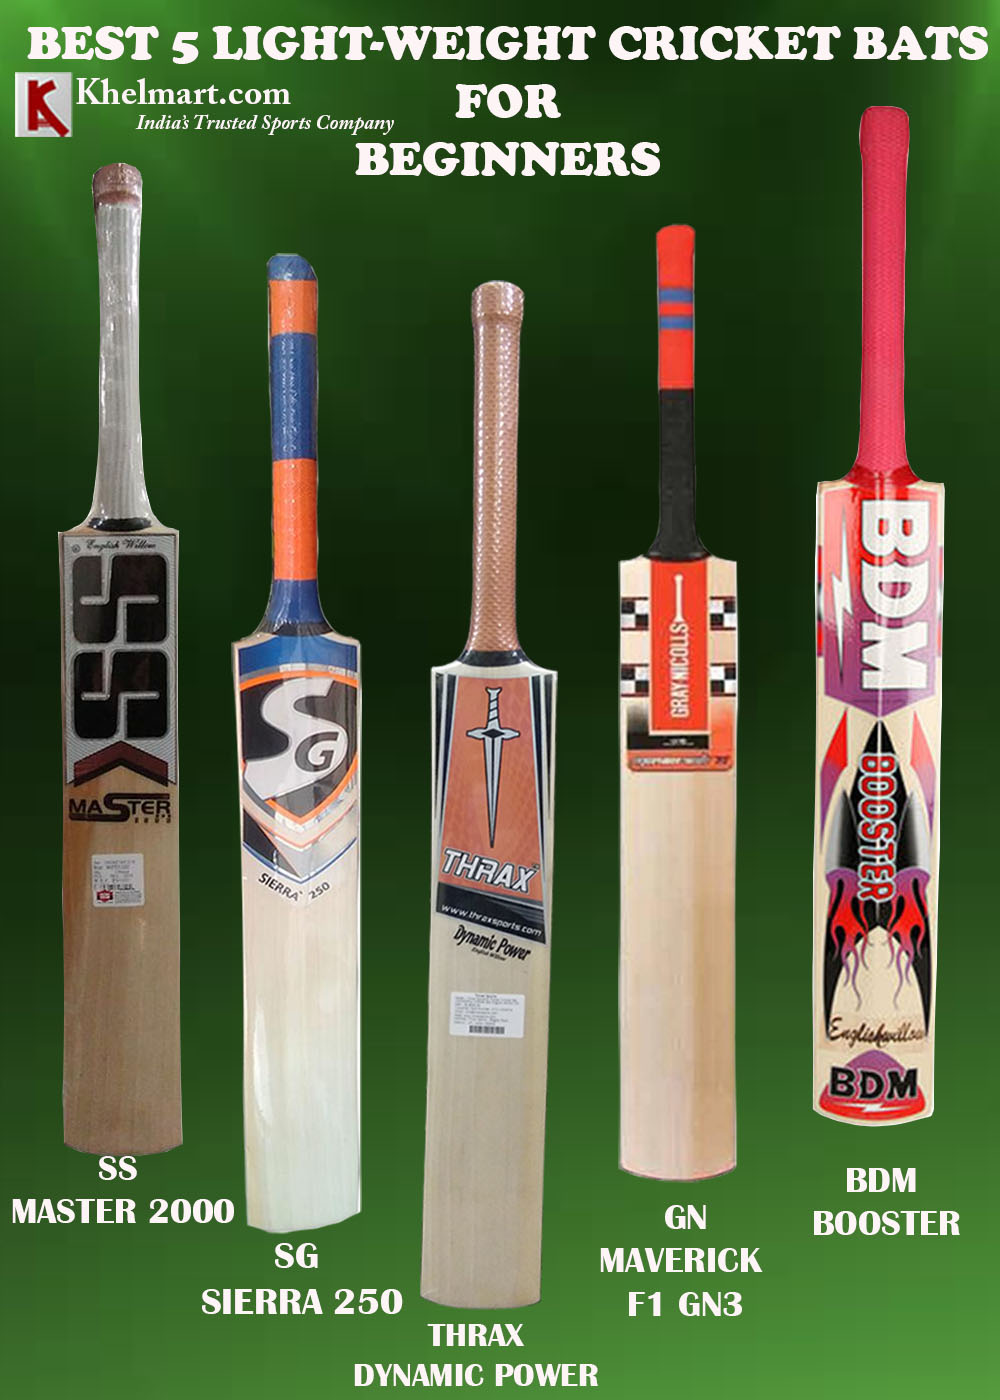 BEST 5 LIGHT WEIGHT CRICKET BATS FOR BEGINNERS